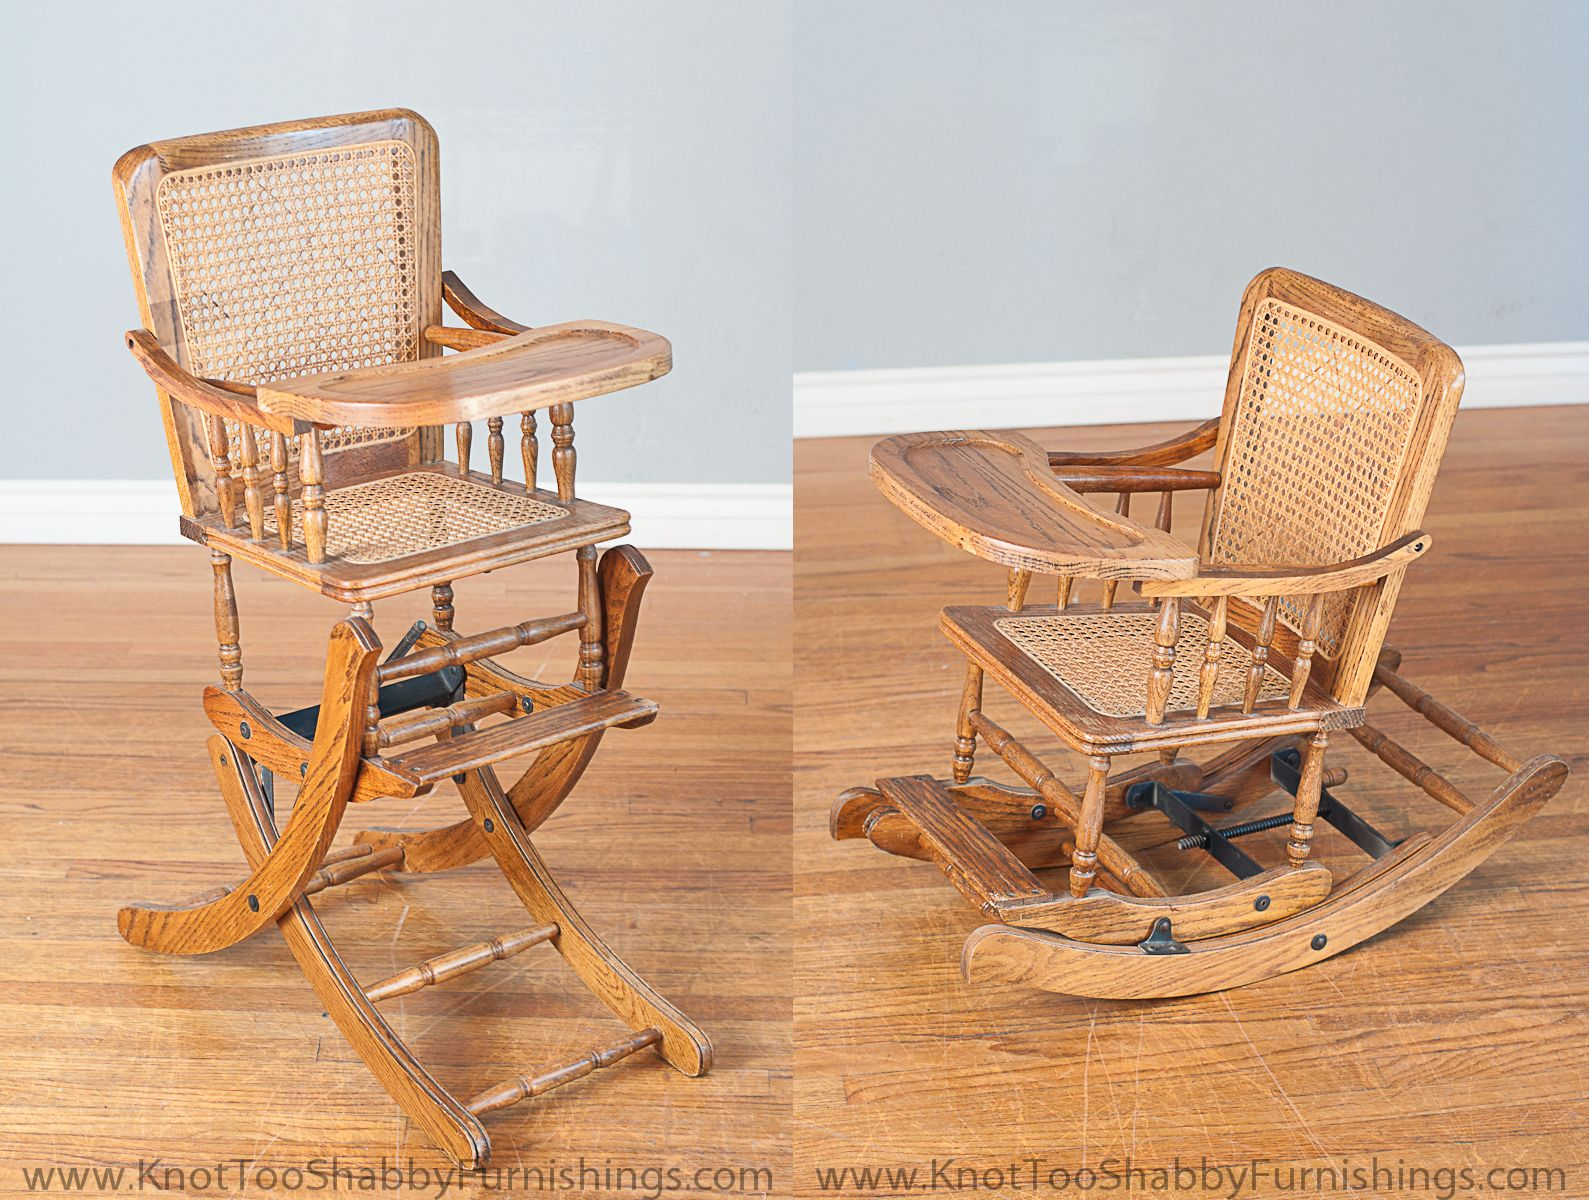 Antique nursery rocking chair - Antique Baby High Chair That Also Transforms Into A Rocking Chair They Just Don